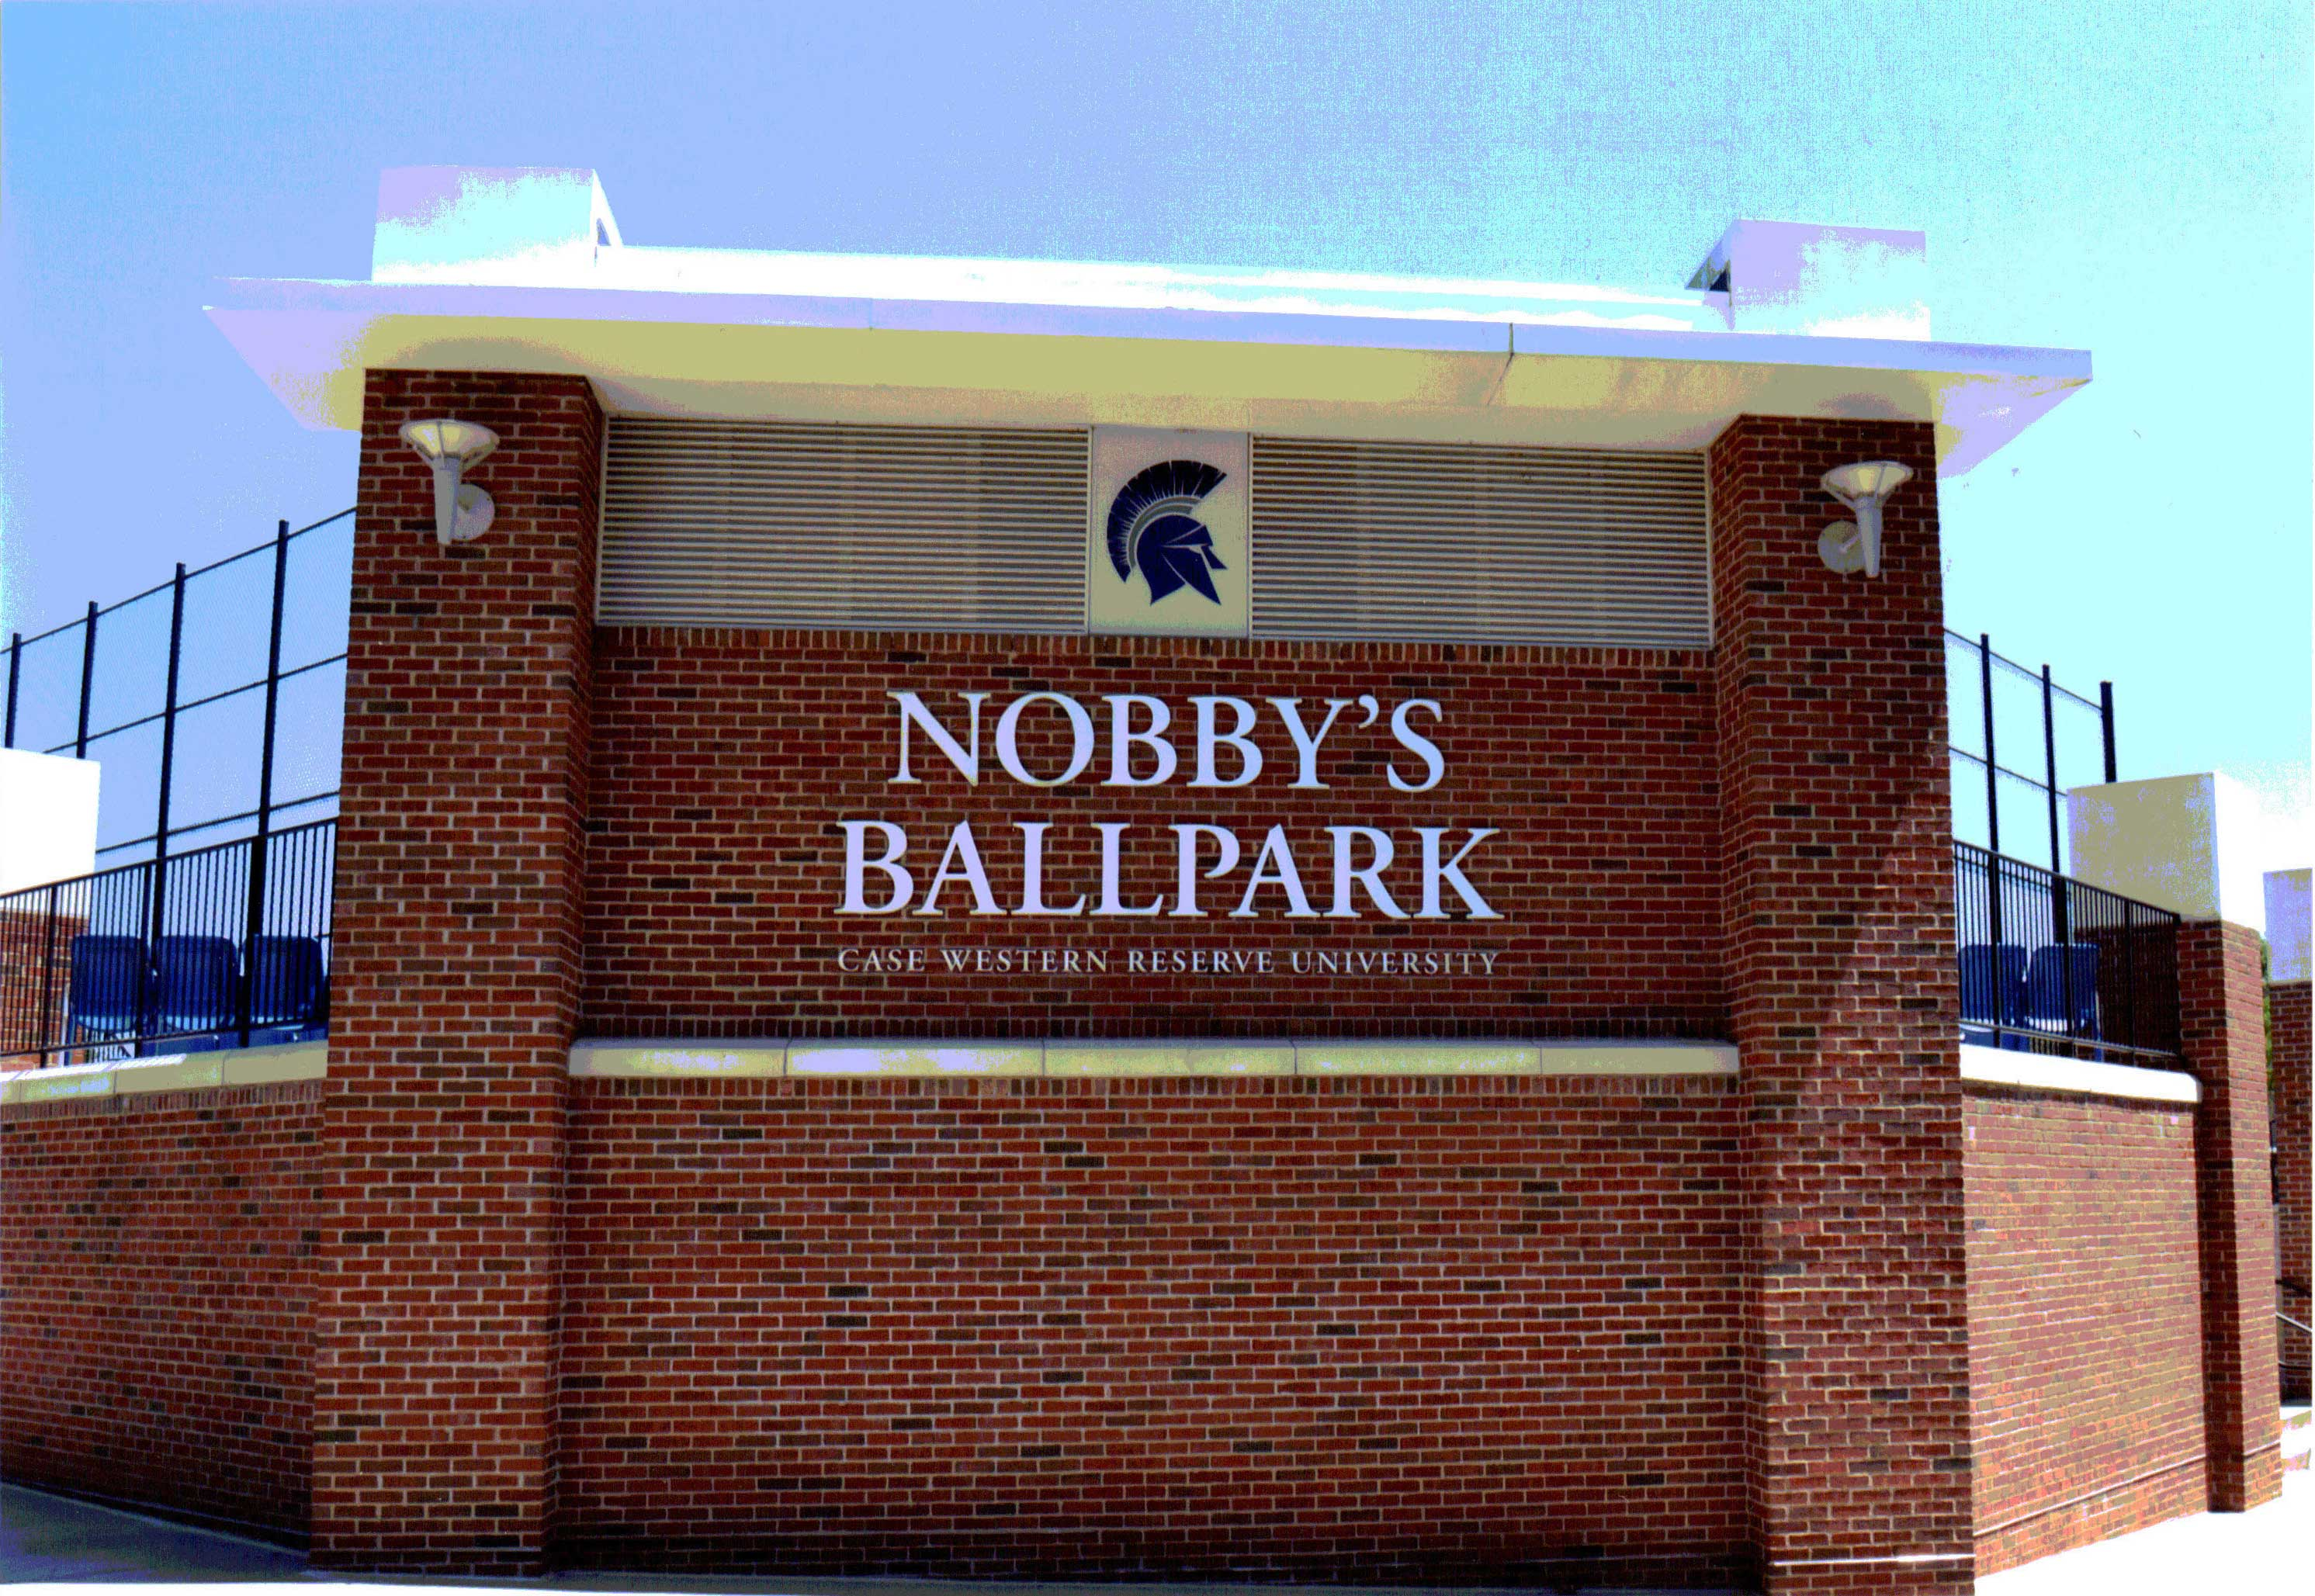 Facade-Nobbys-Ballpark-closeup